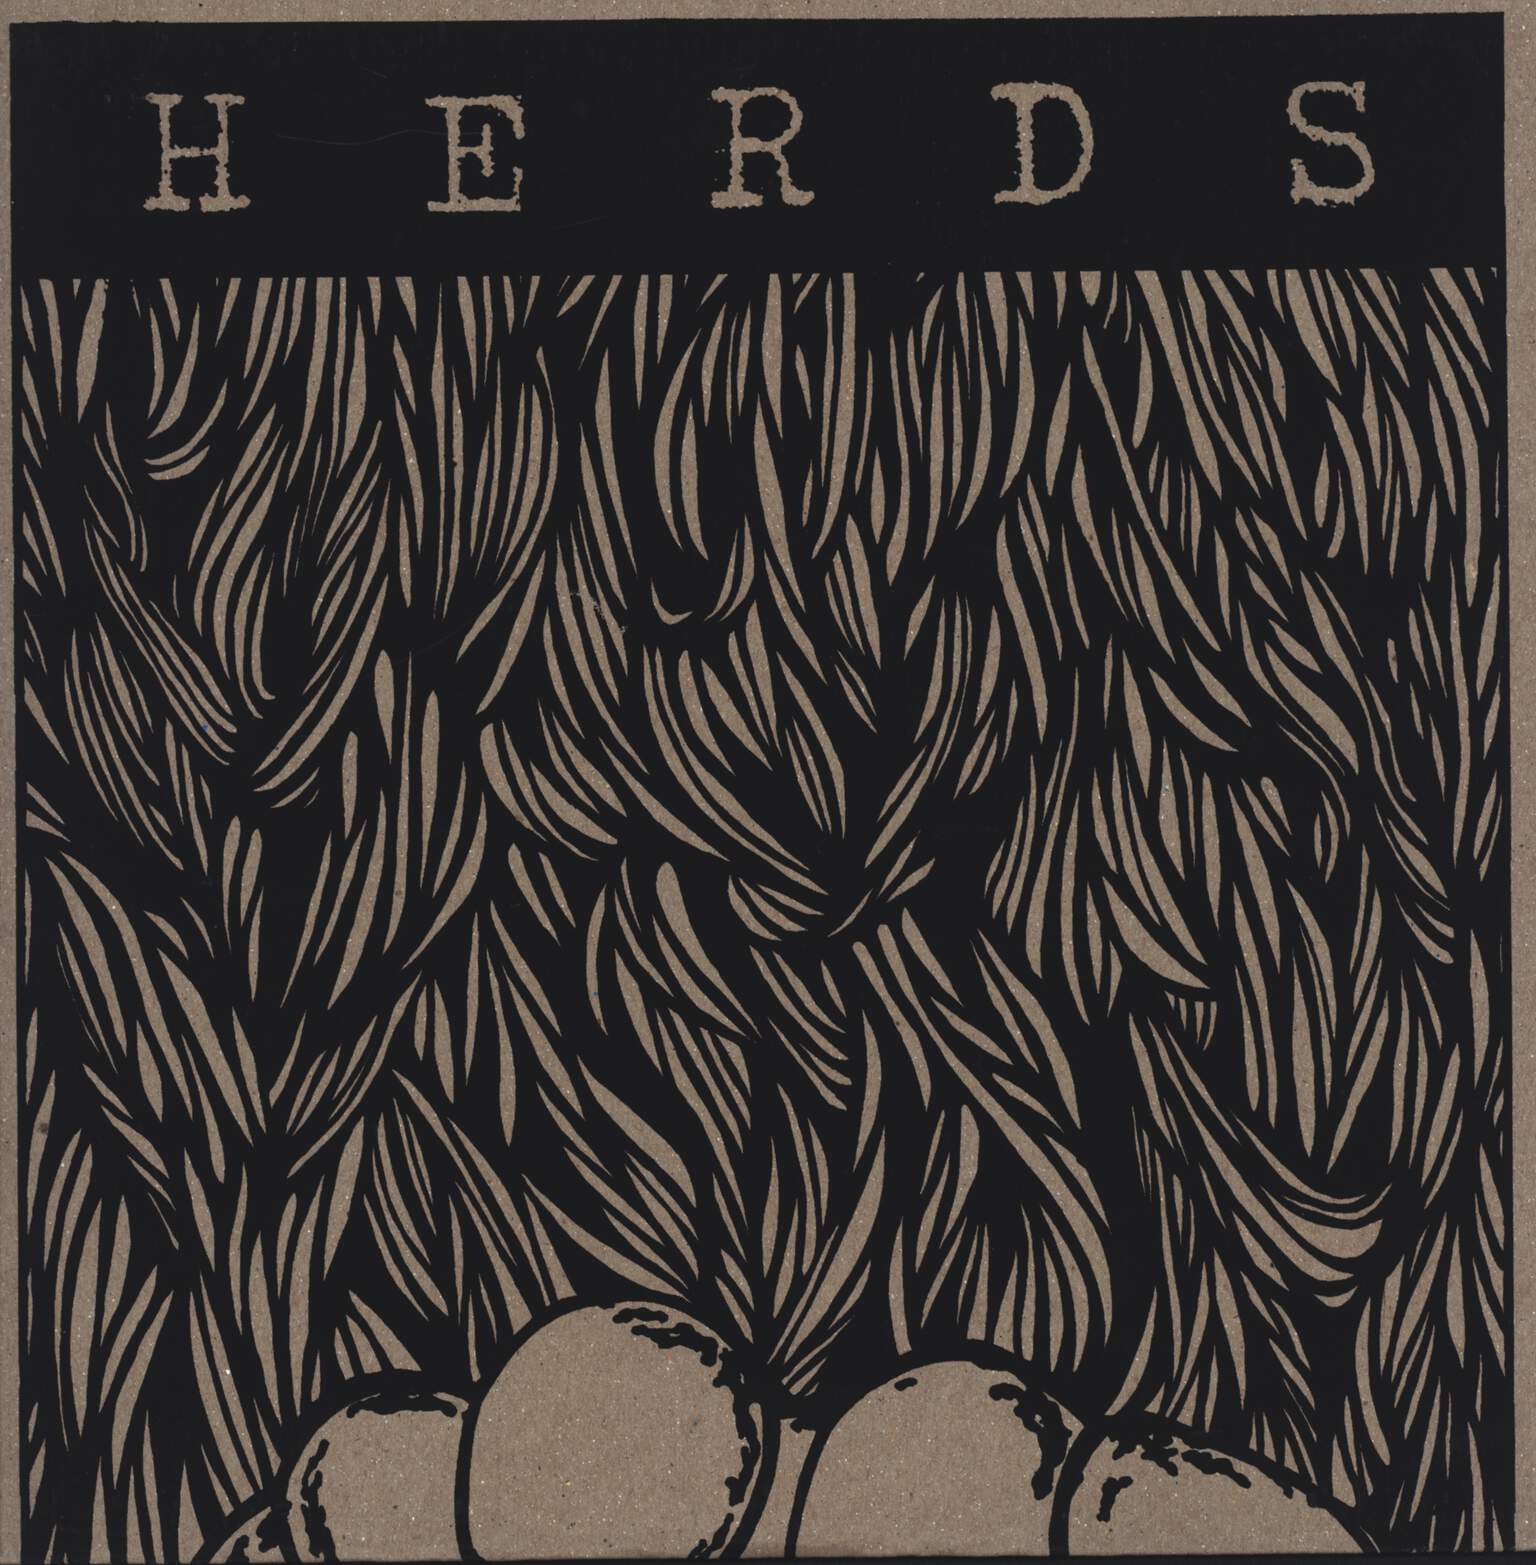 Herds: Herds, LP (Vinyl)